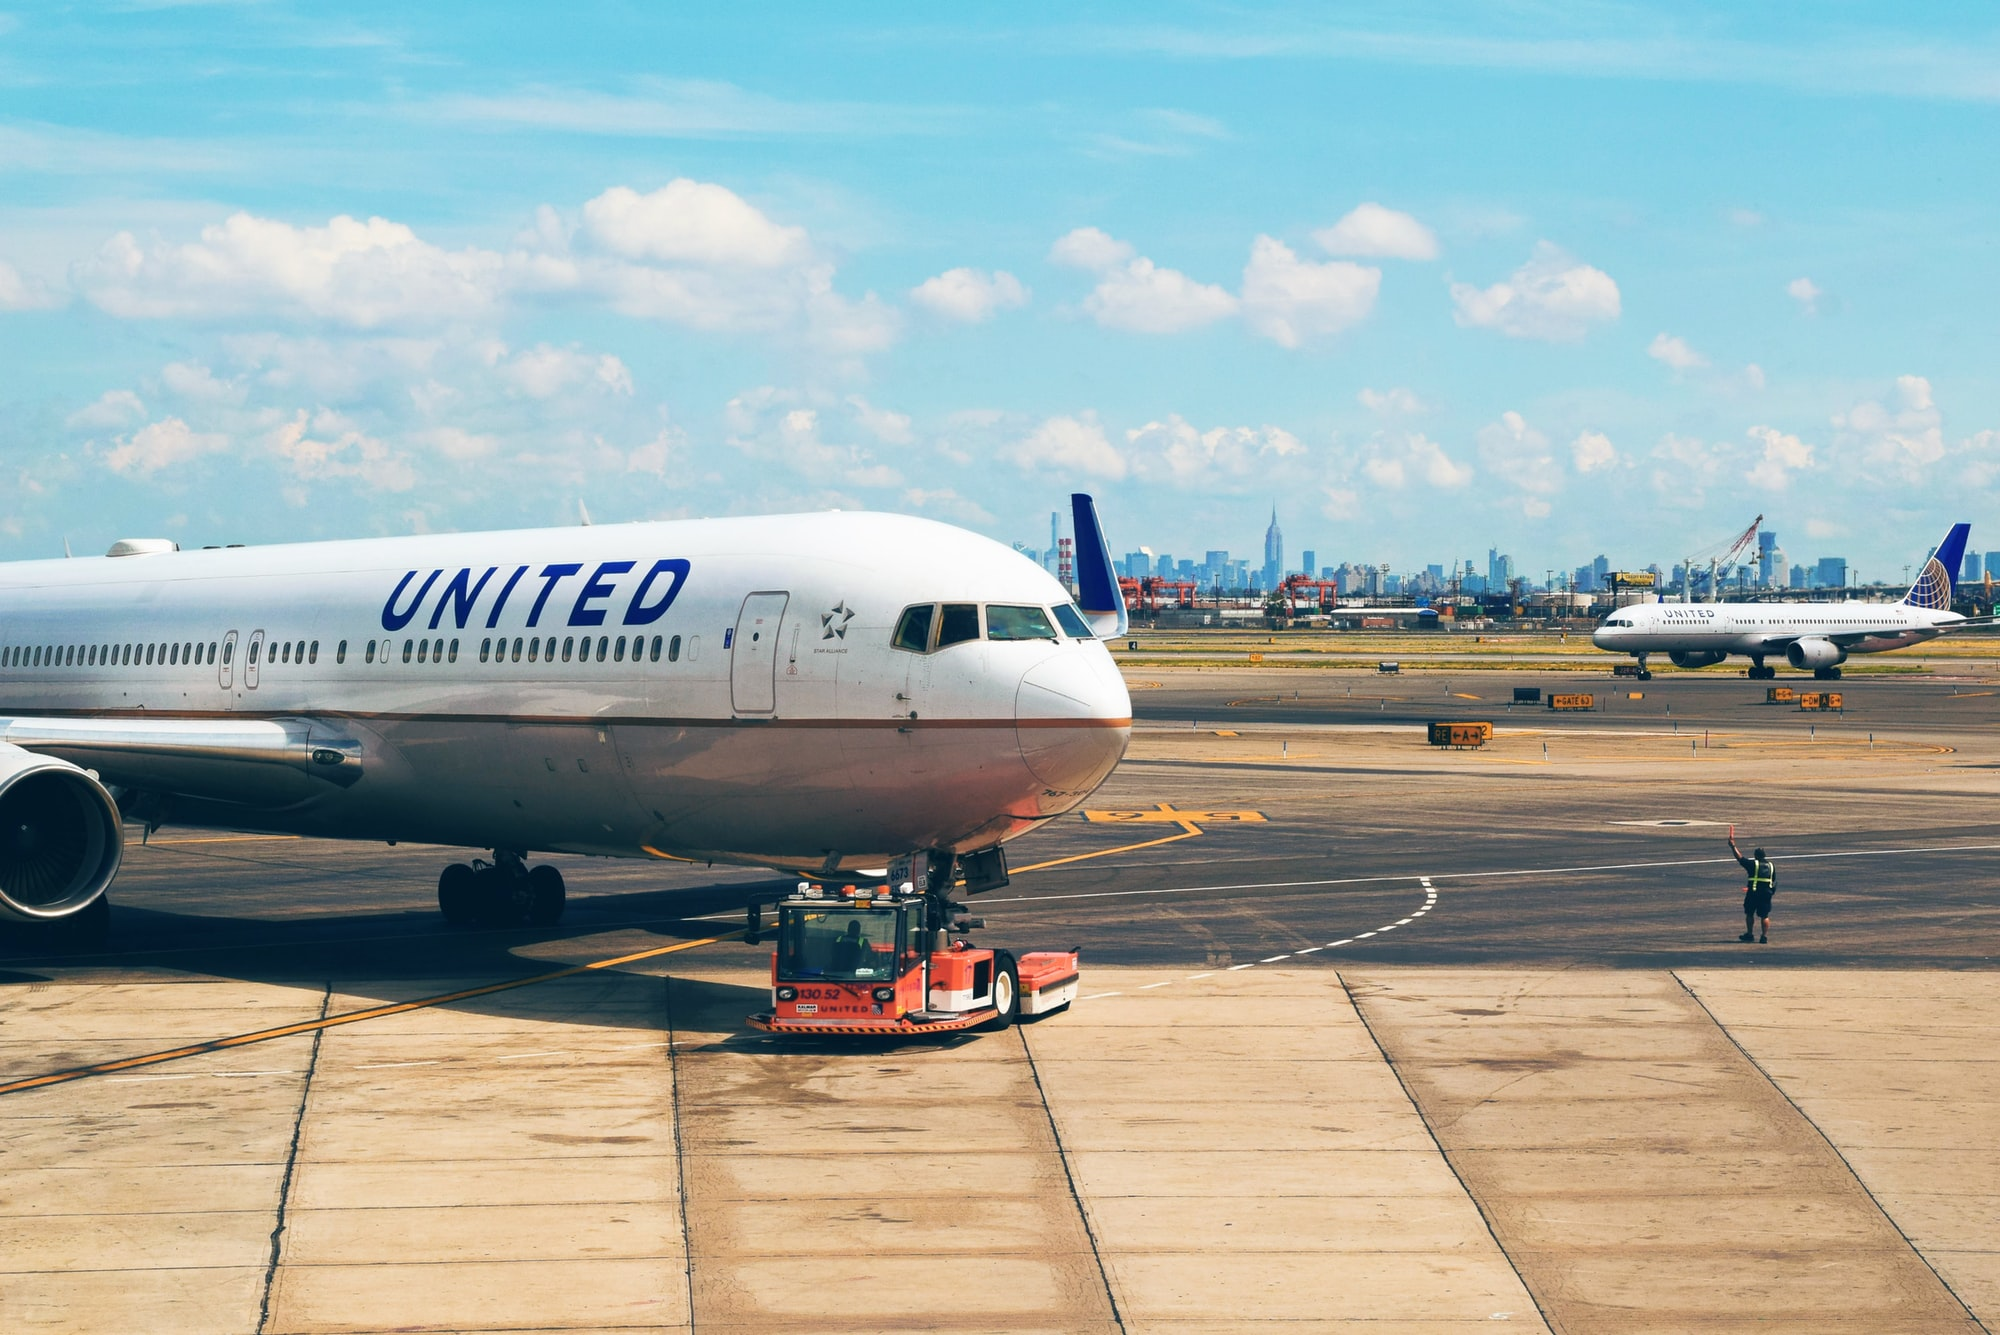 United Wants to Stop Polluting...By Capturing All The Carbon